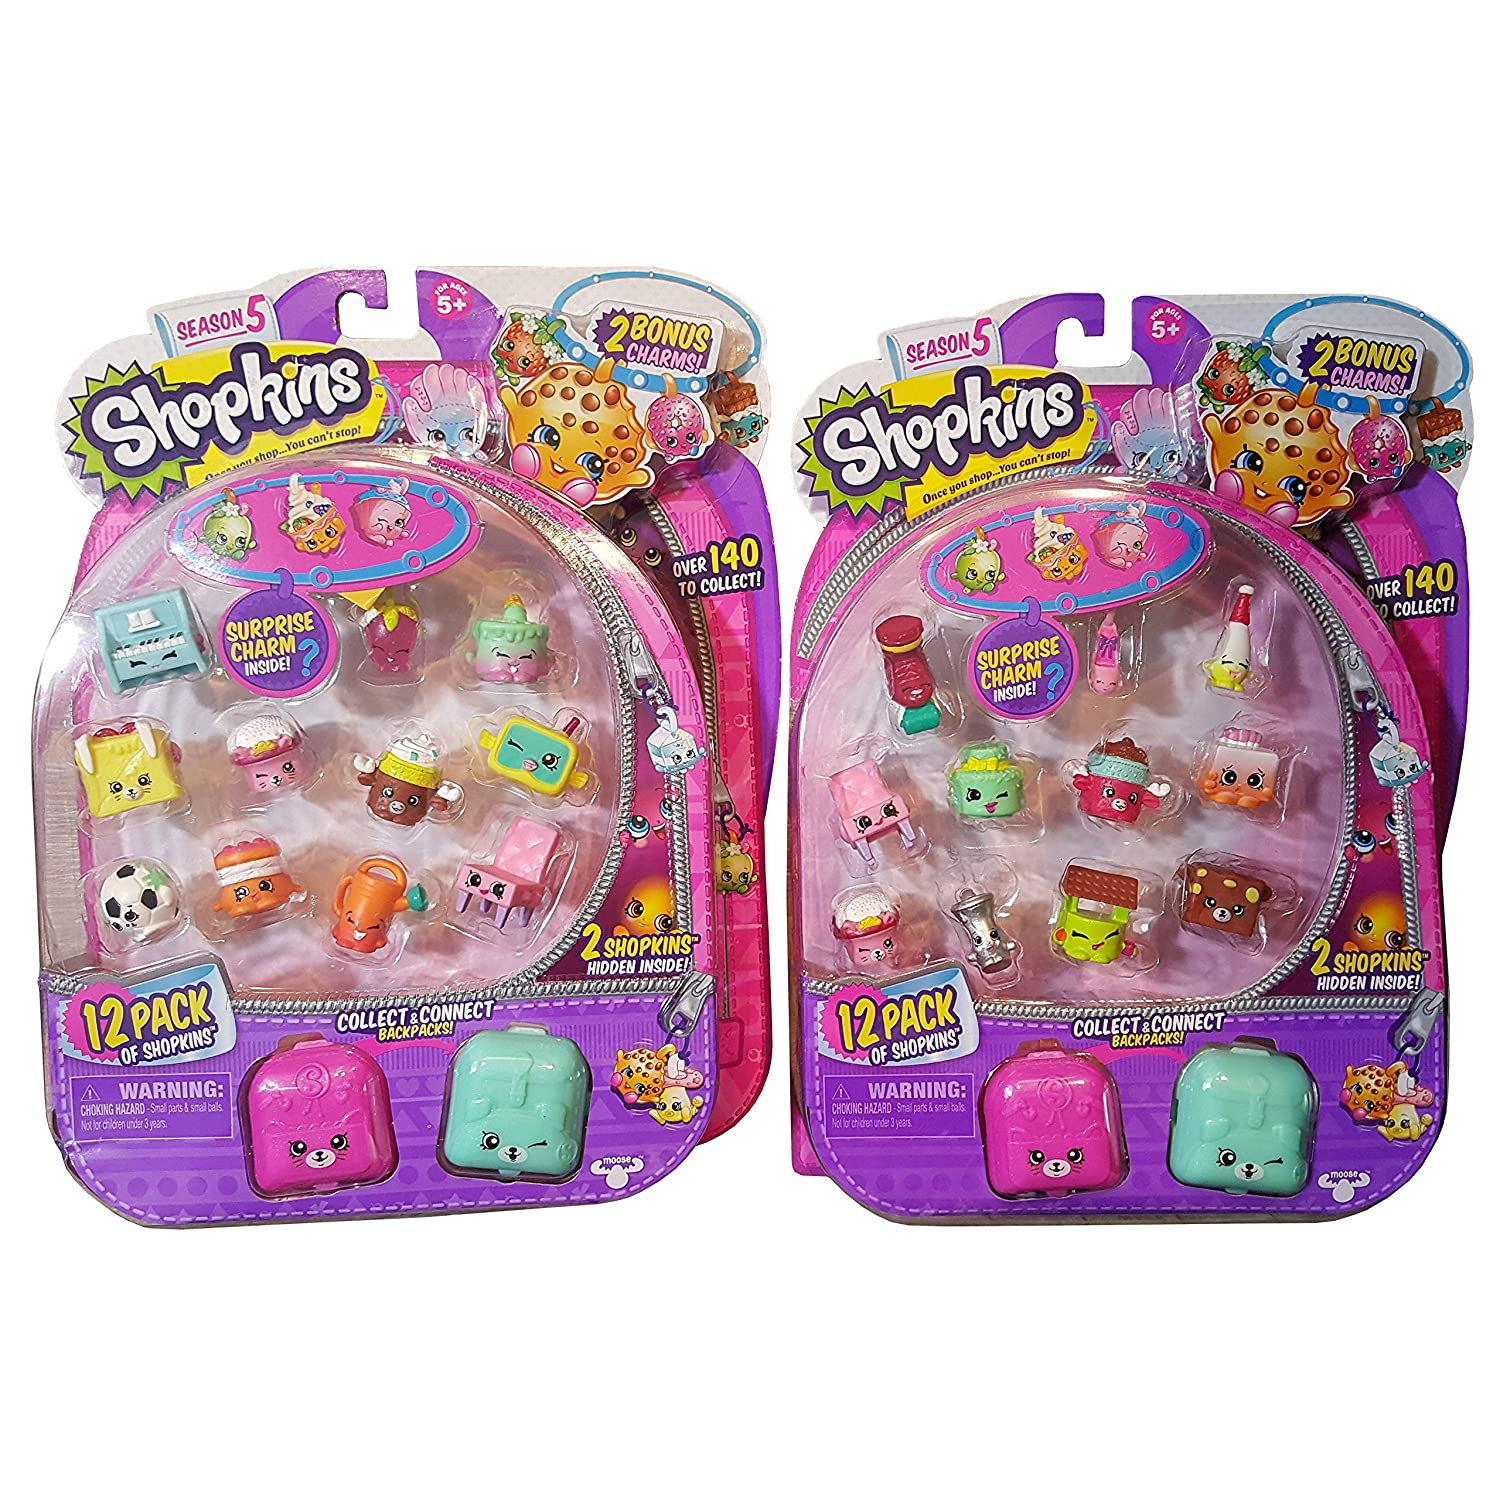 NEW SHOPKINS 5 PACK SEASON 5 BACKPACK CHARMS TOY FIGURE COLLECTIBLE